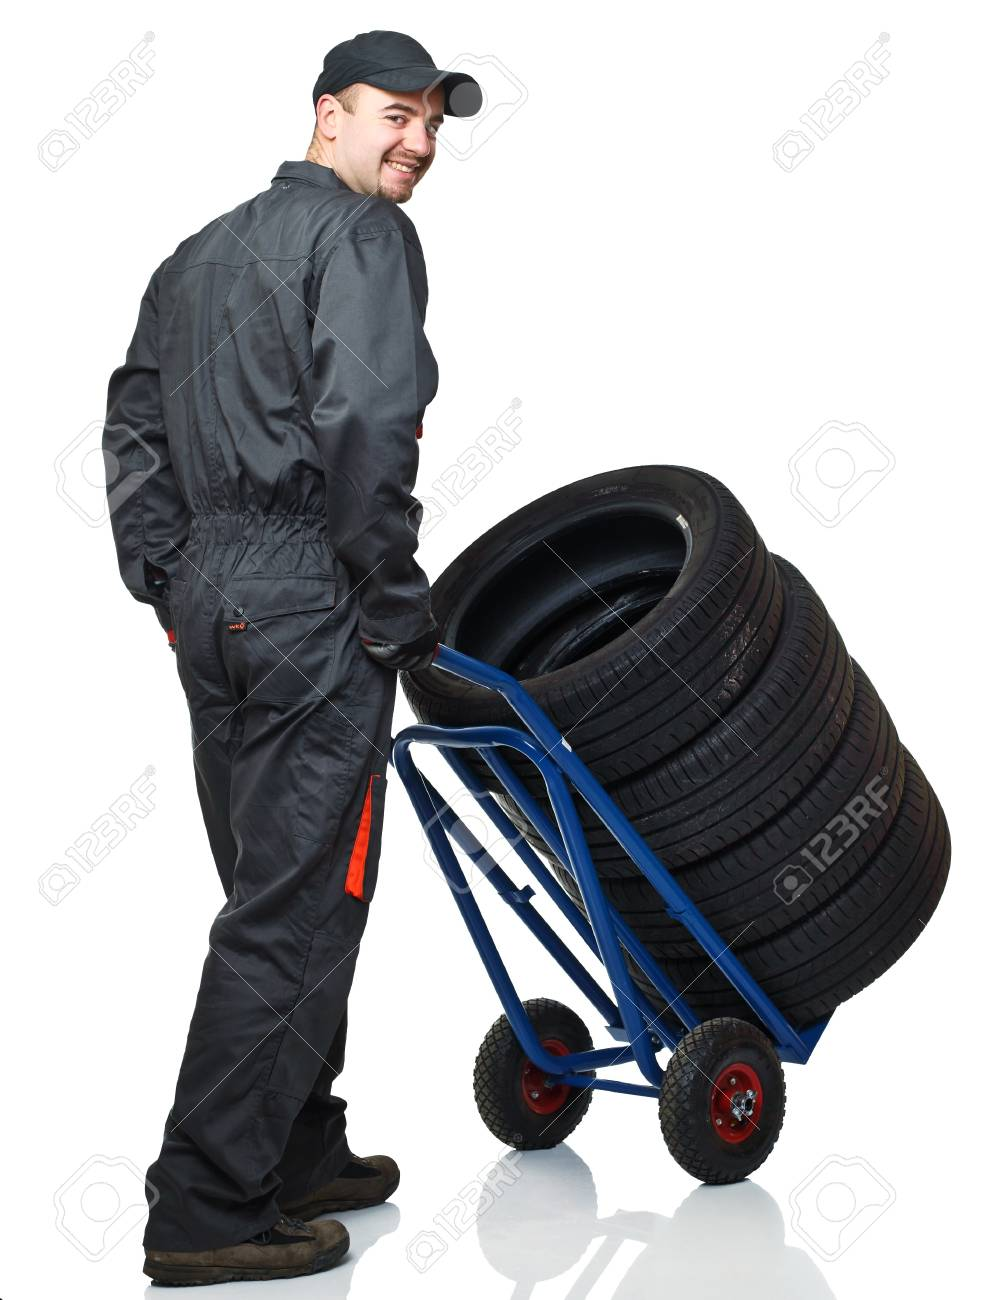 manual worker with handtruck and tires on white background Stock Photo - 8815379